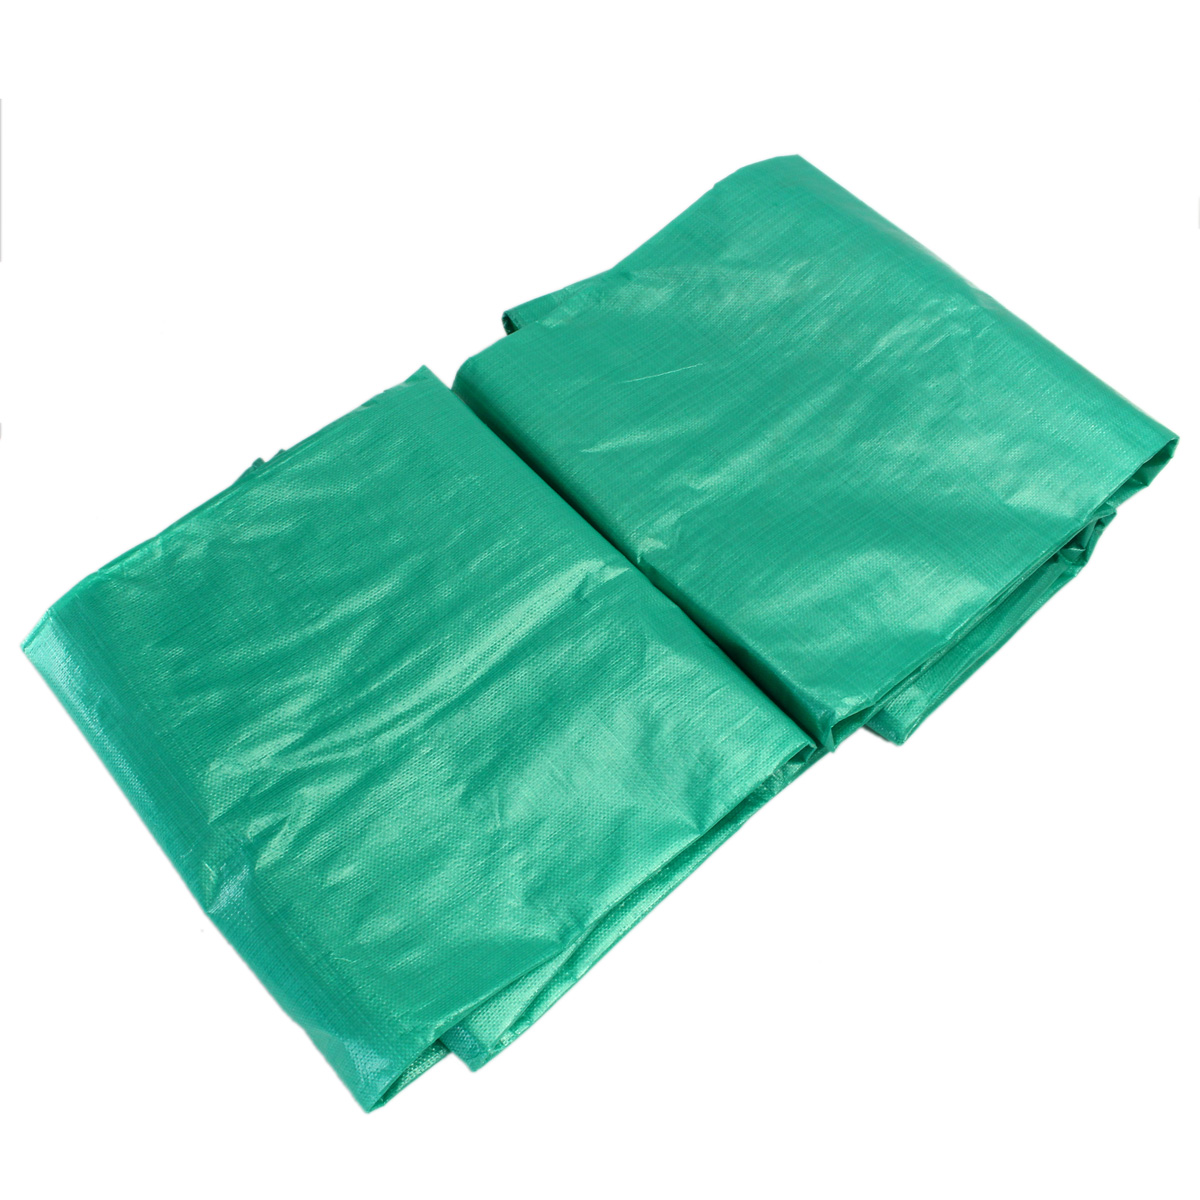 PE 63.6m/19.711.8ft Outdoor Waterproof Camping Tarpaulin Field Camp Tent Cover Car Cover Canopy